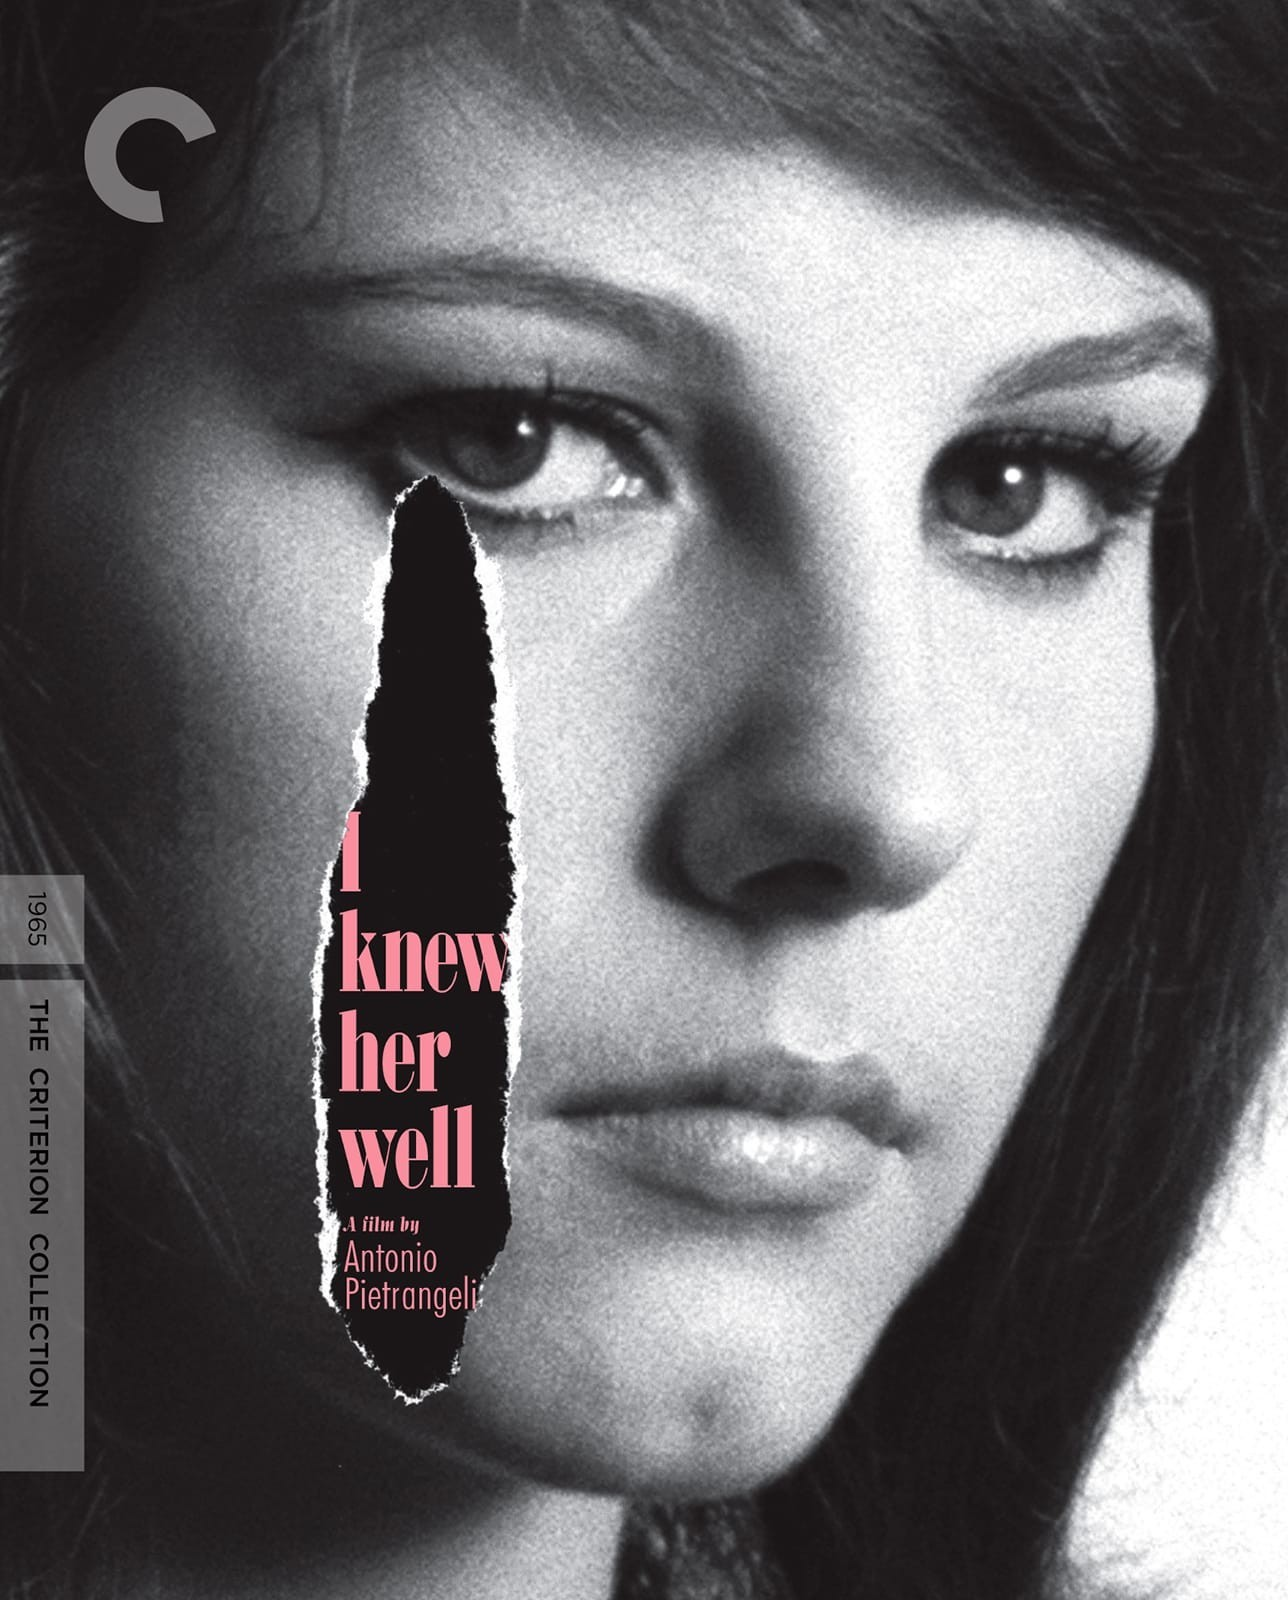 I Knew Her Well (1965) The Criterion Collection Blu-ray